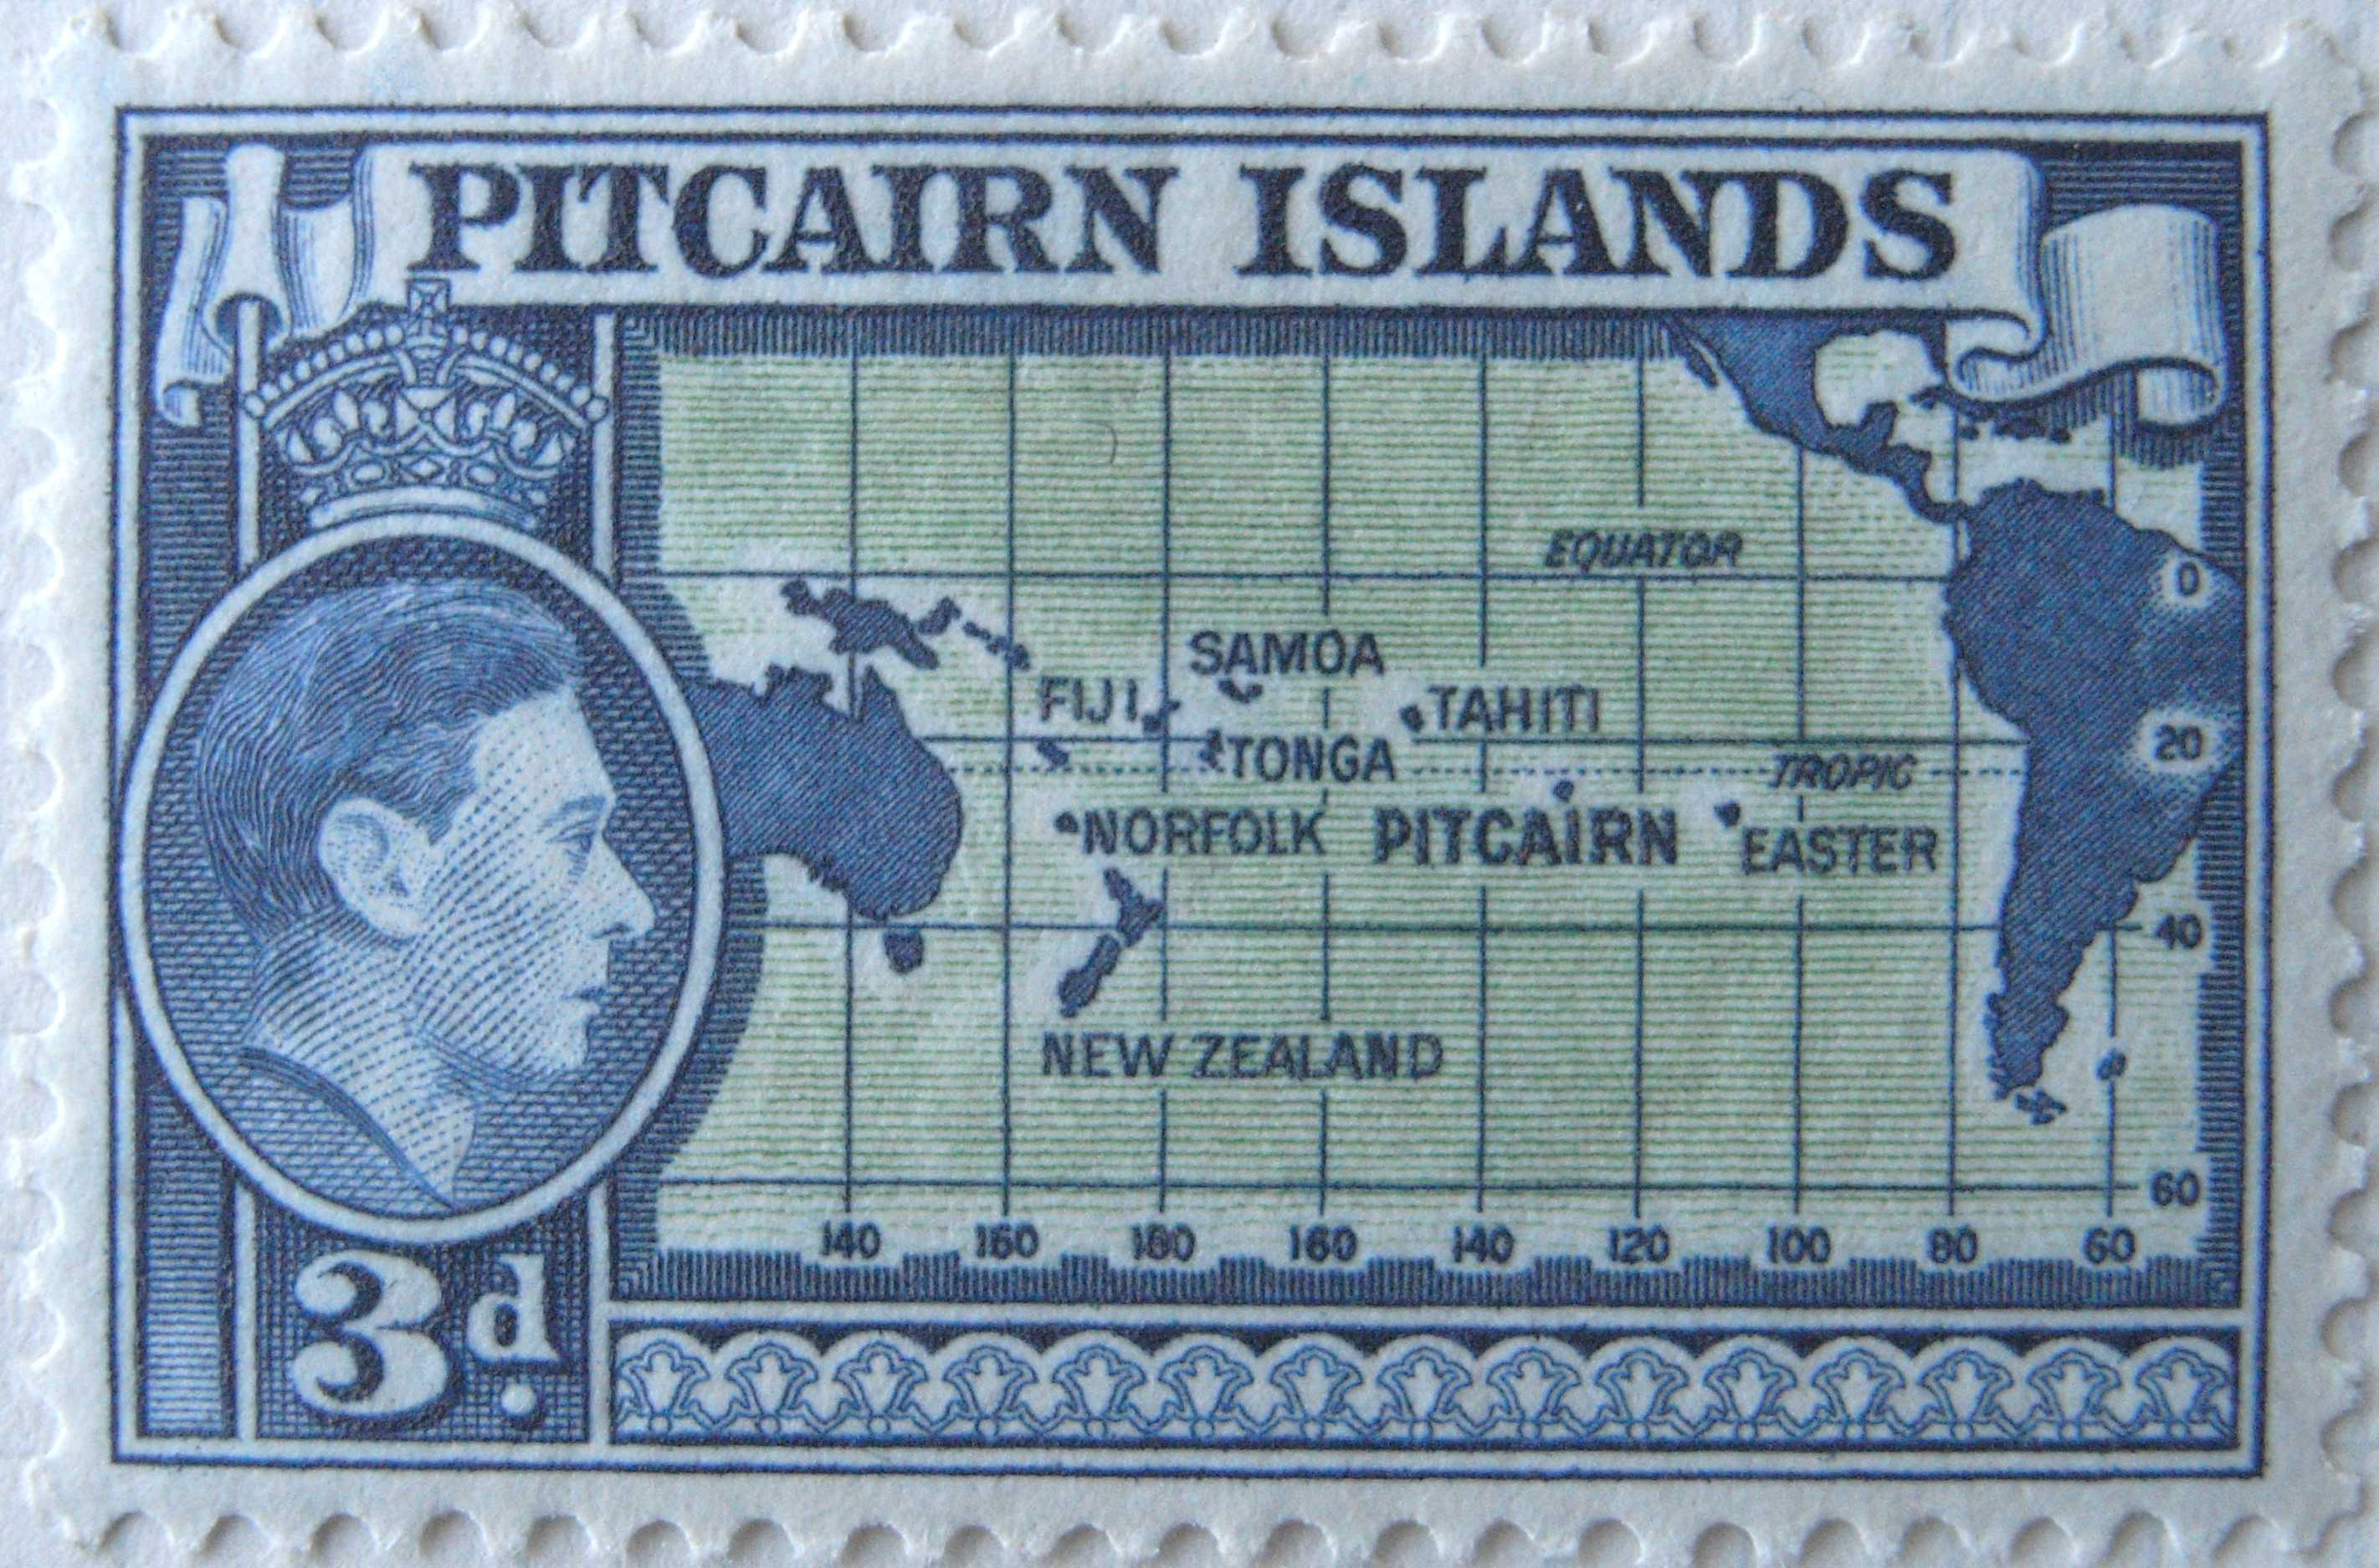 Stamp pitcairn islands 3d.jpg